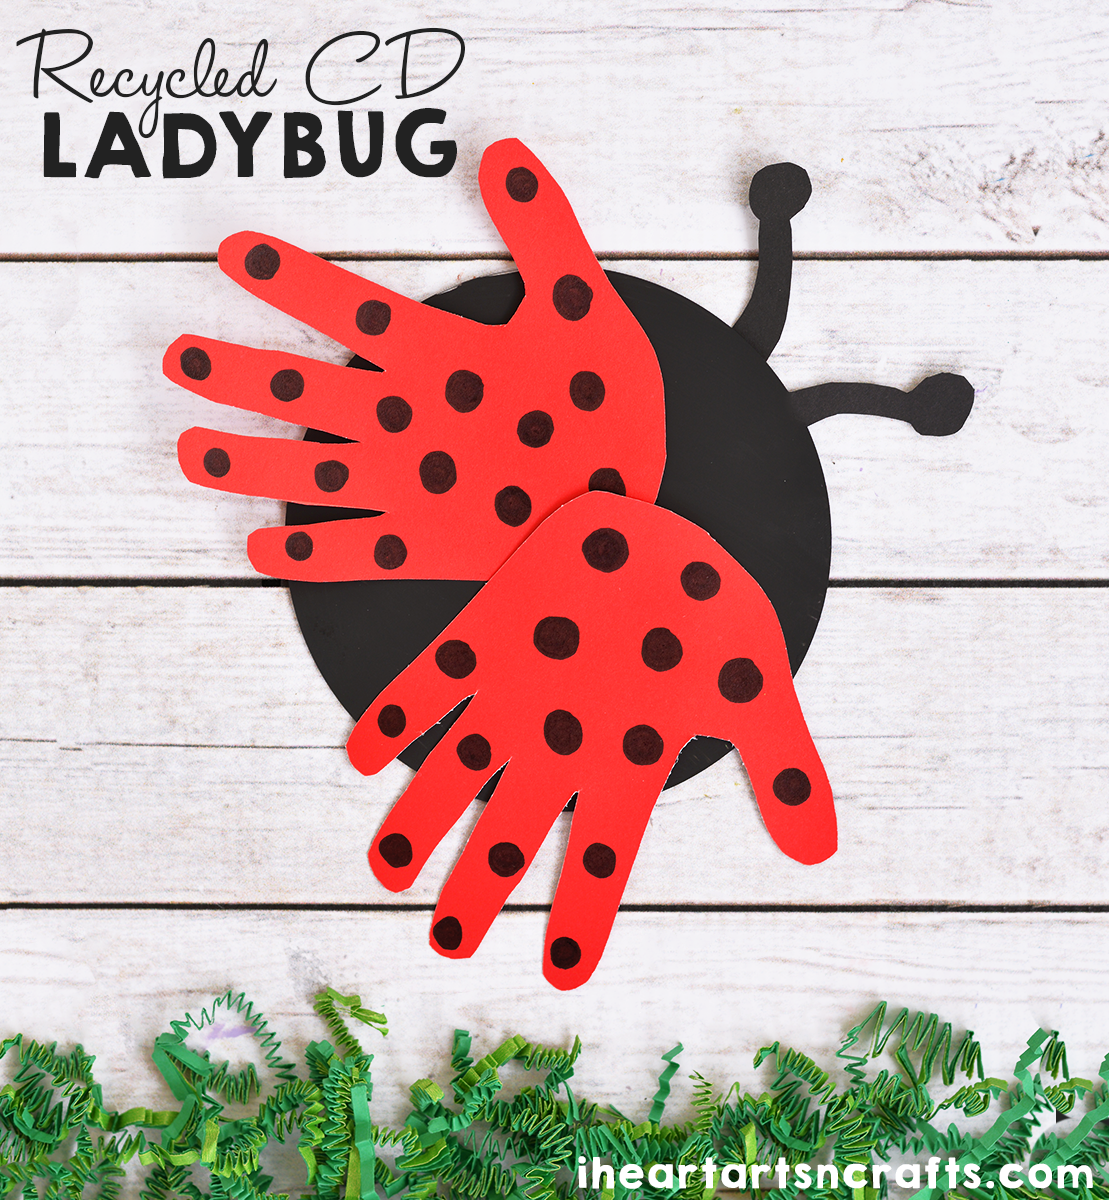 Recycled Cd Ladybug Craft For Kids I Heart Arts N Crafts